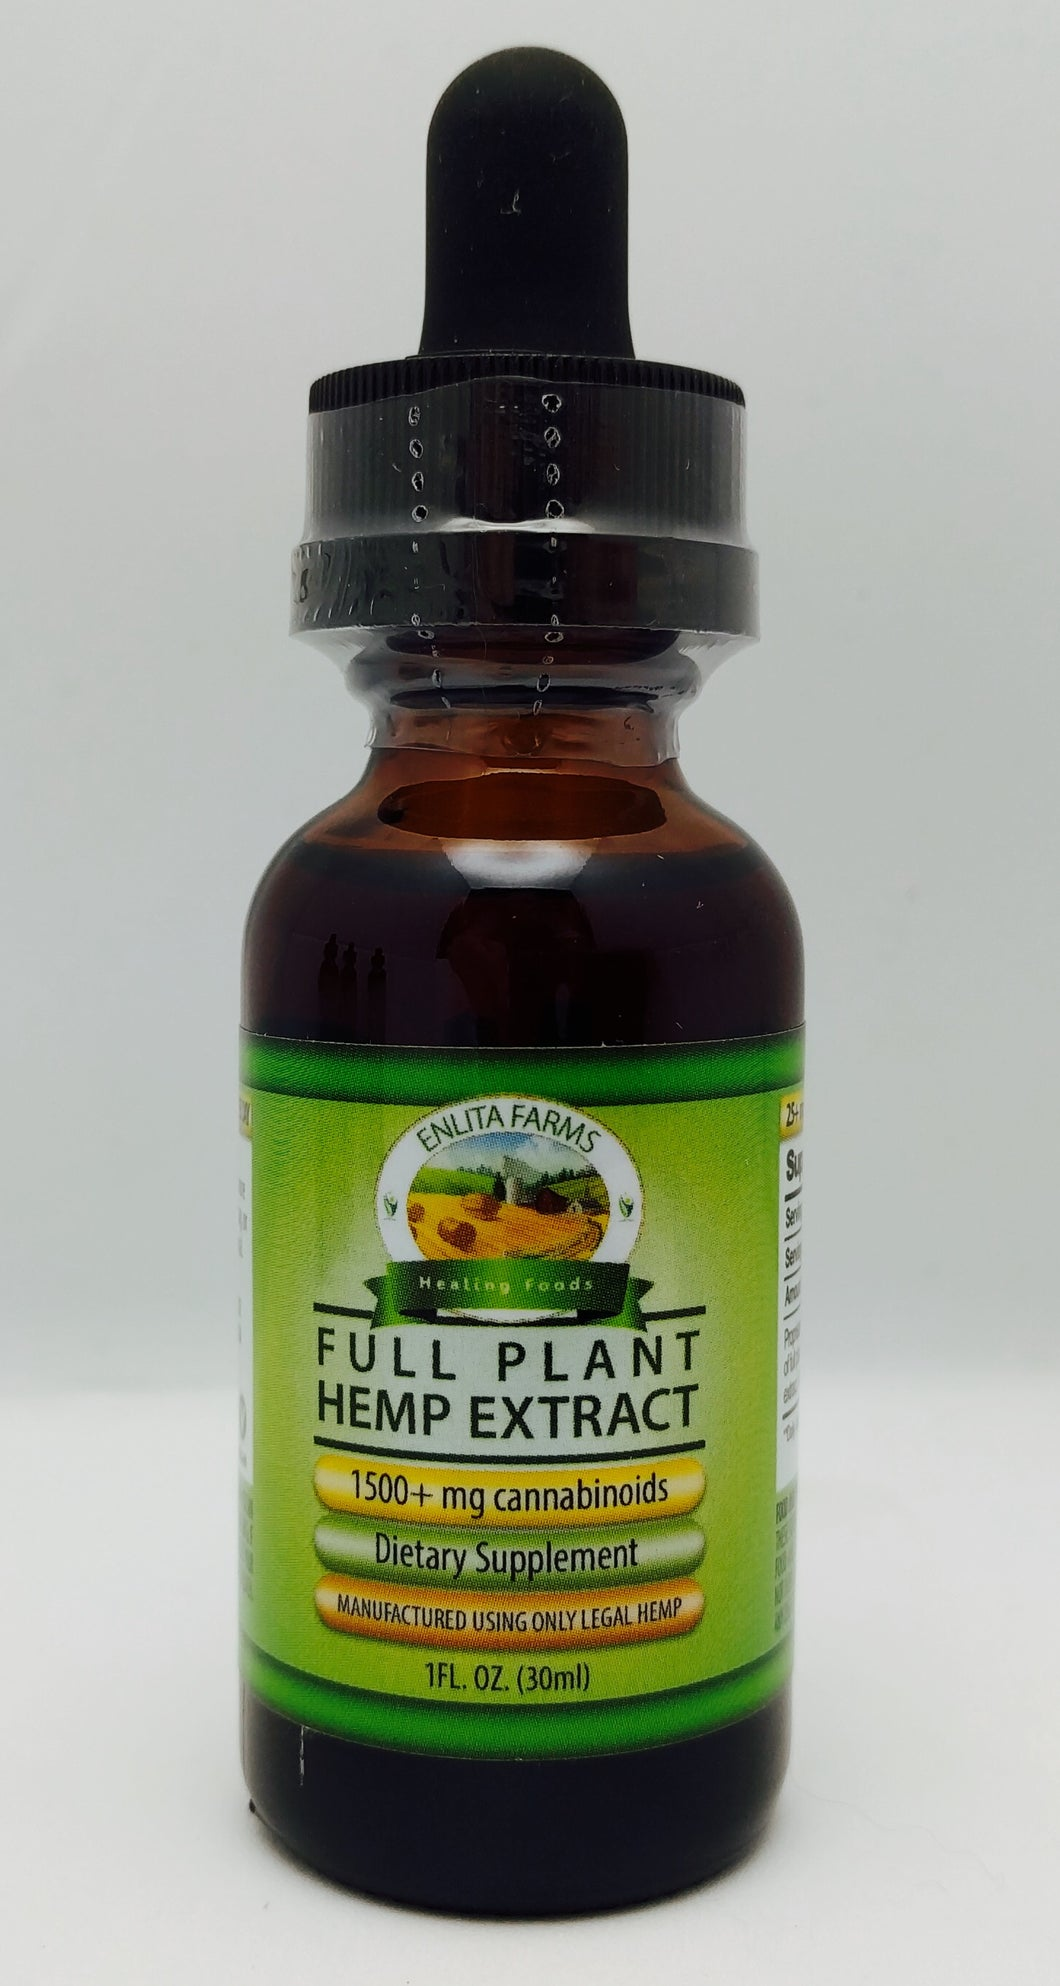 Enlita Farms CBD oil Full-spectrum Hemp Extract Tincture 1500mg - 30 mL